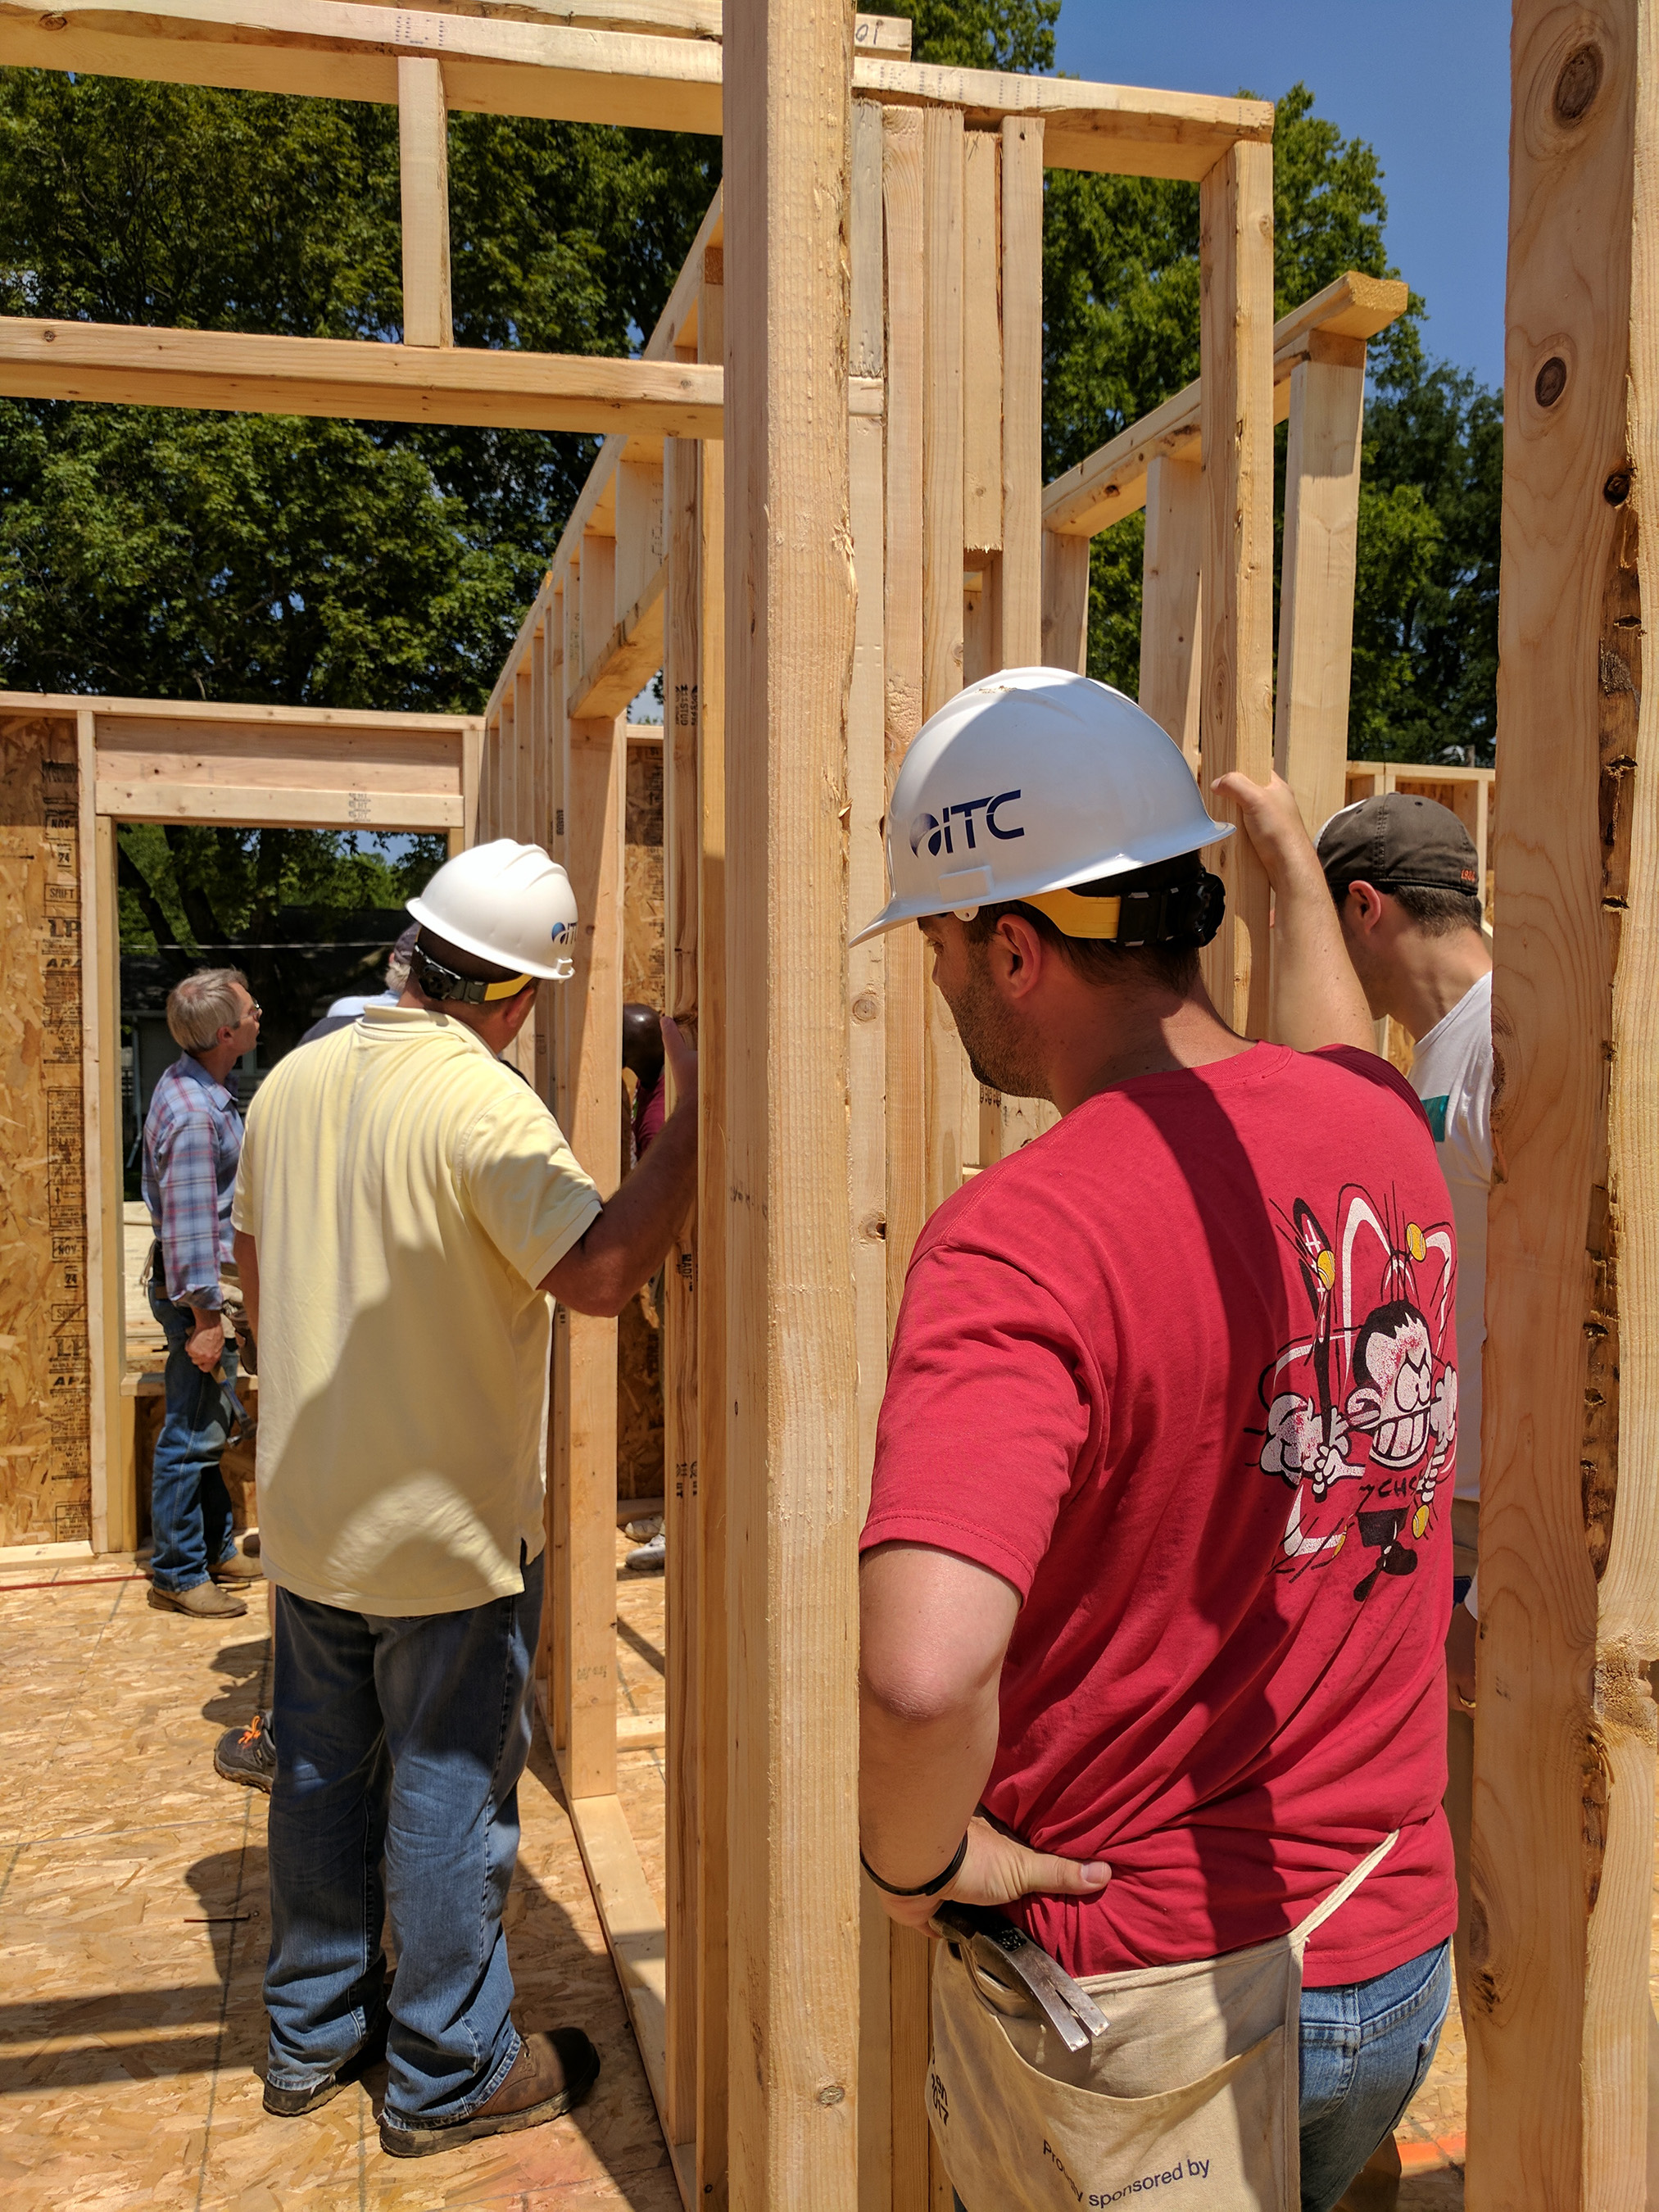 Cedar Valley Habitat for Humanity builds and rehabilitates simple, decent and affordable homes in partnership with families in need in Linn and Benton counties in Iowa.